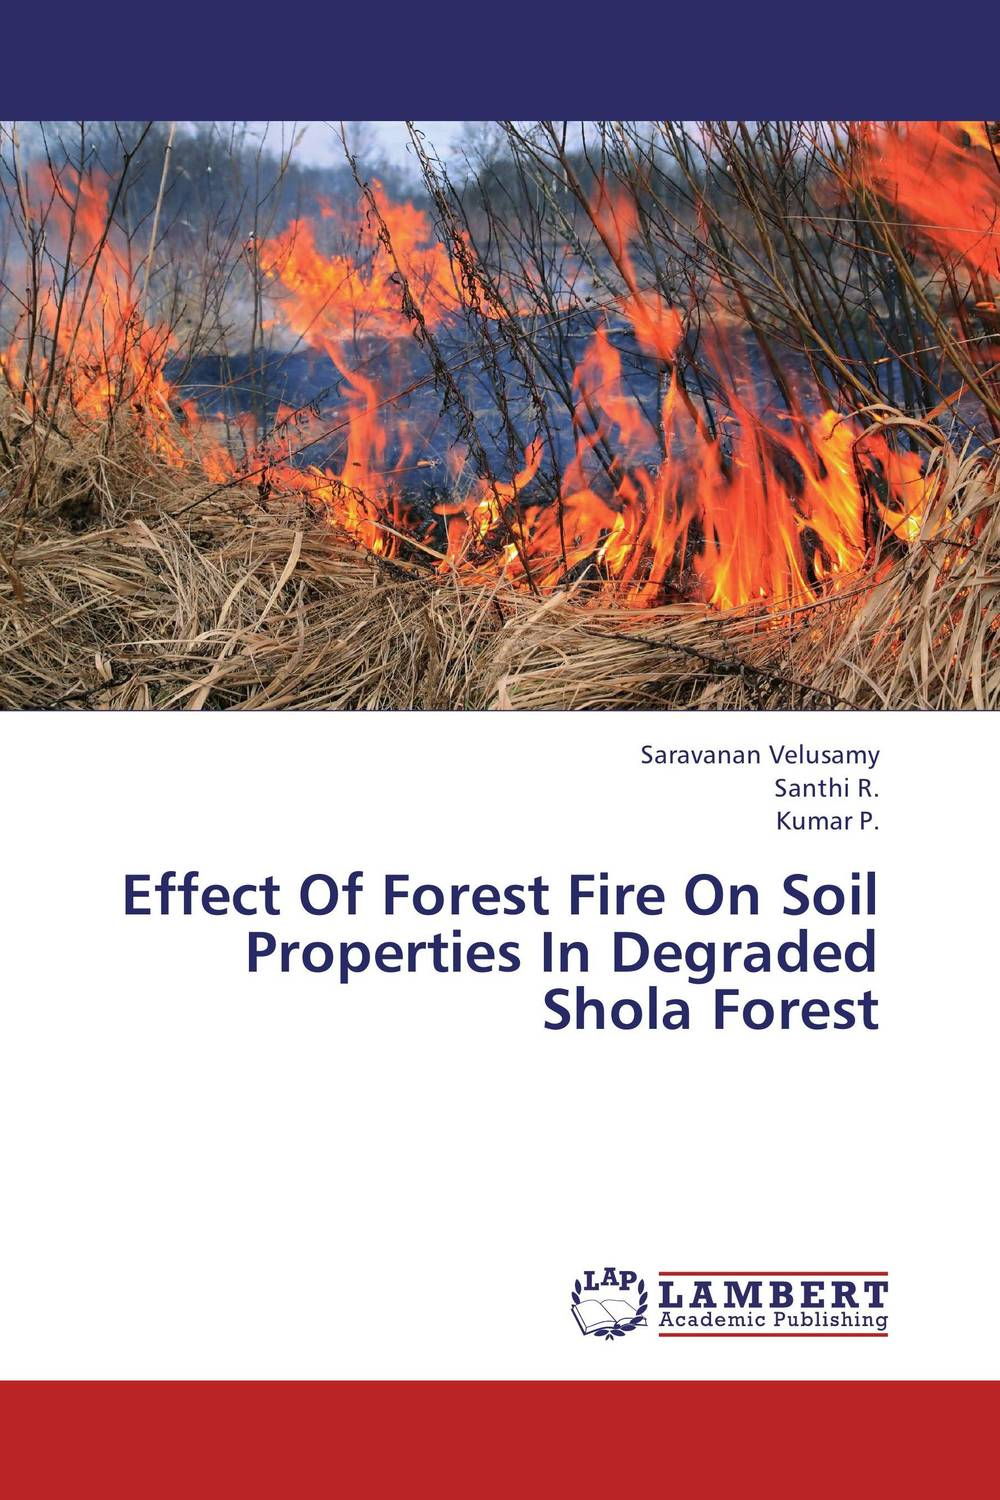 Effect Of Forest Fire On Soil Properties In Degraded Shola Forest b p r d hell on earth volume 8 lake of fire